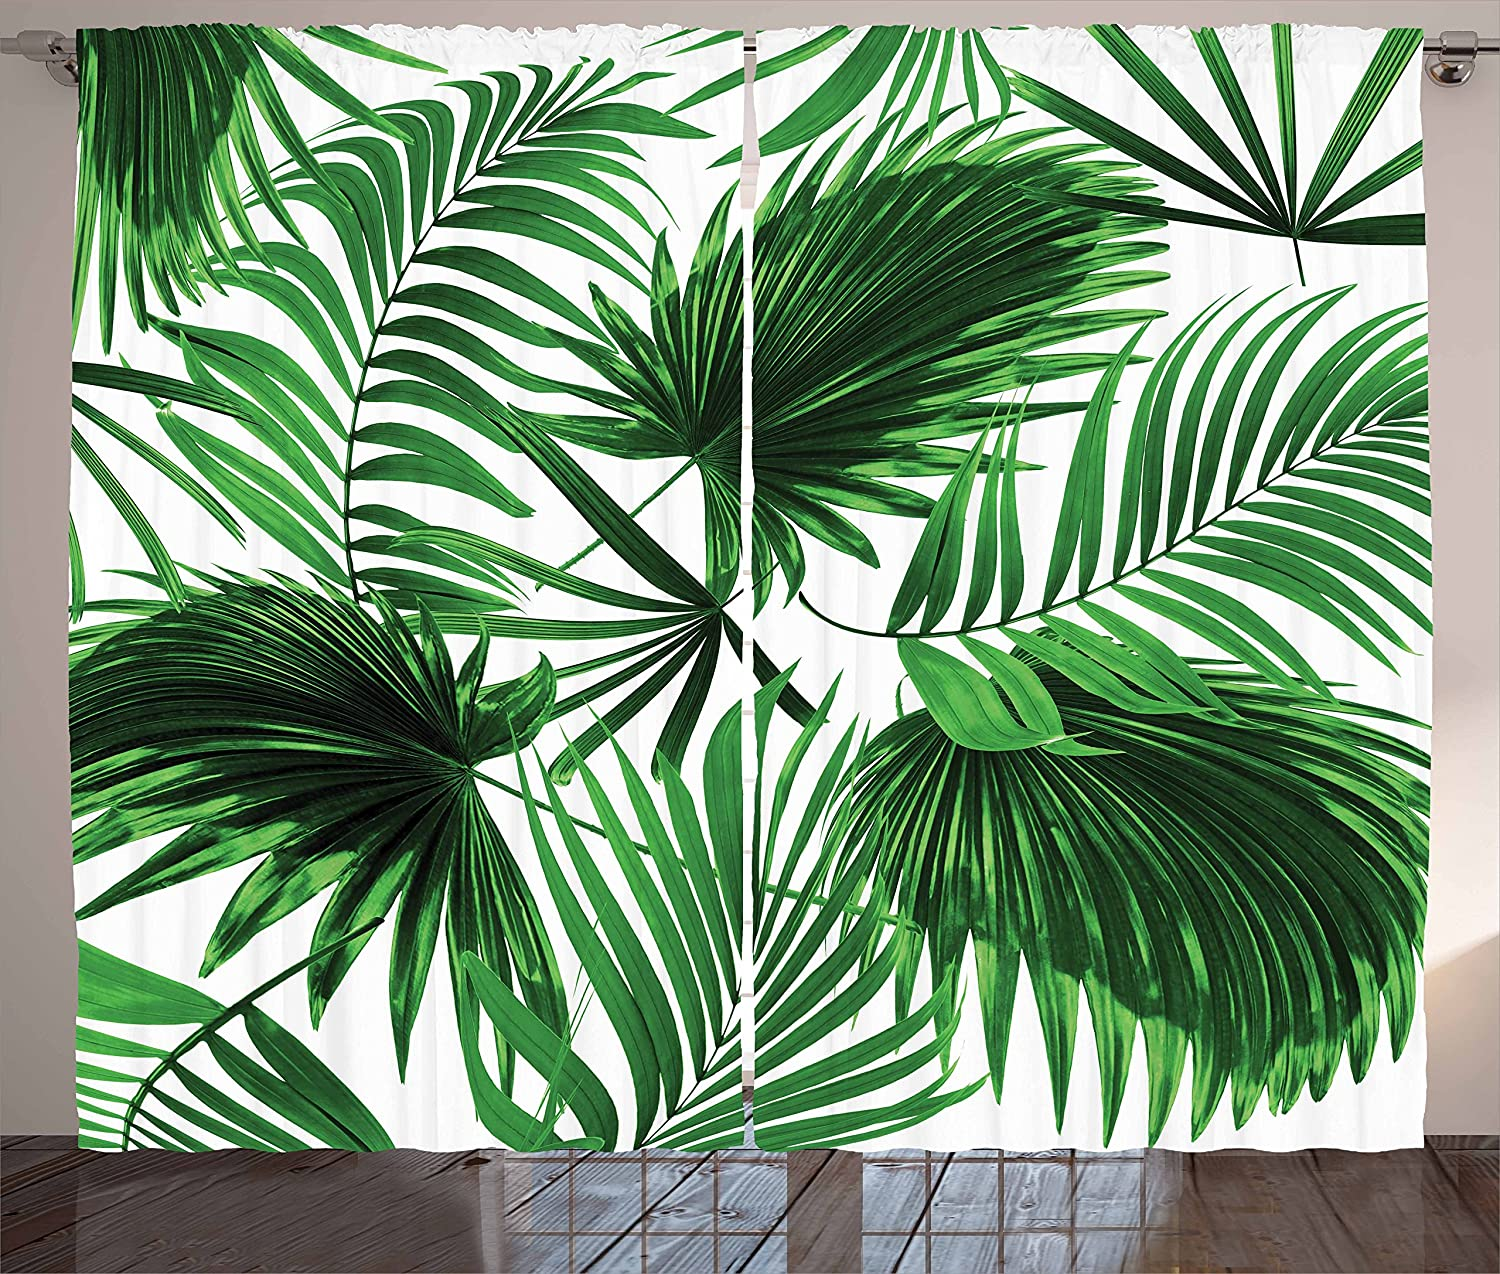 "Ambesonne Palm Leaf Curtains, Realistic Vivid Leaves of Palm Tree Growth Ecology Botany Themed Print, Living Room Bedroom Window Drapes 2 Panel Set, 108"" X 96"", Fern Green"